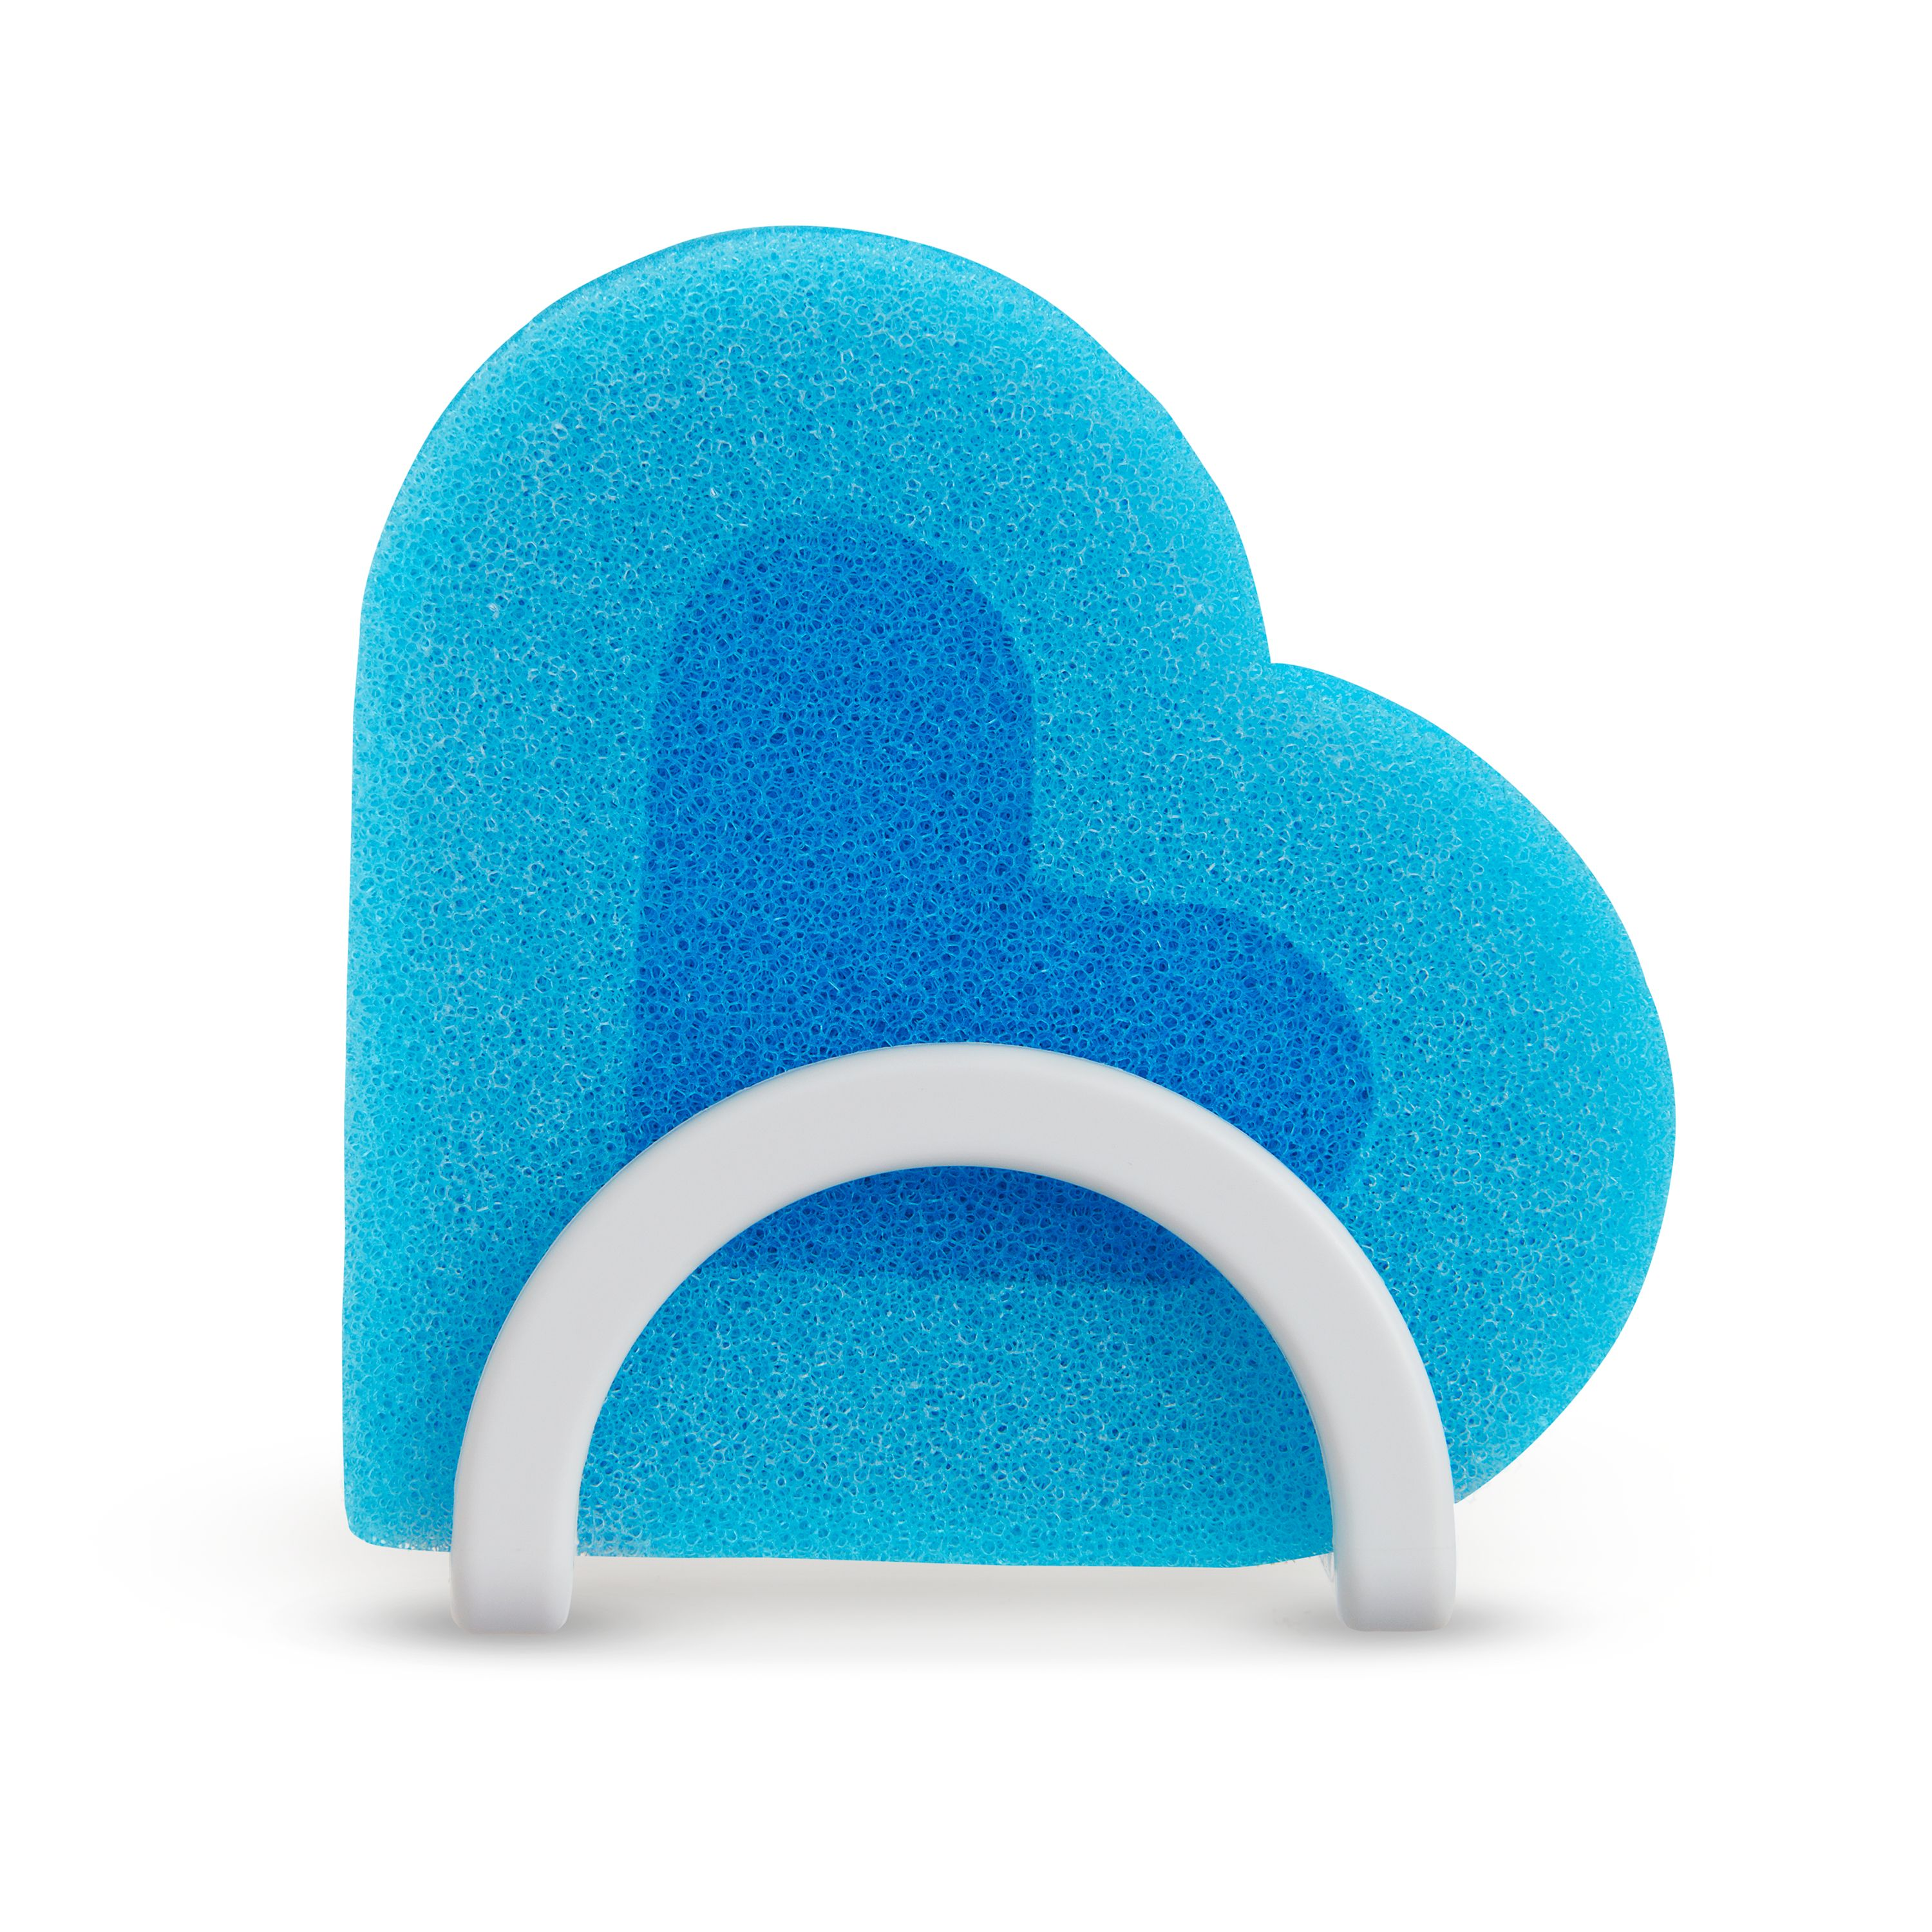 Munchkin Suds Up Cleaning Sponge and Suction Holder